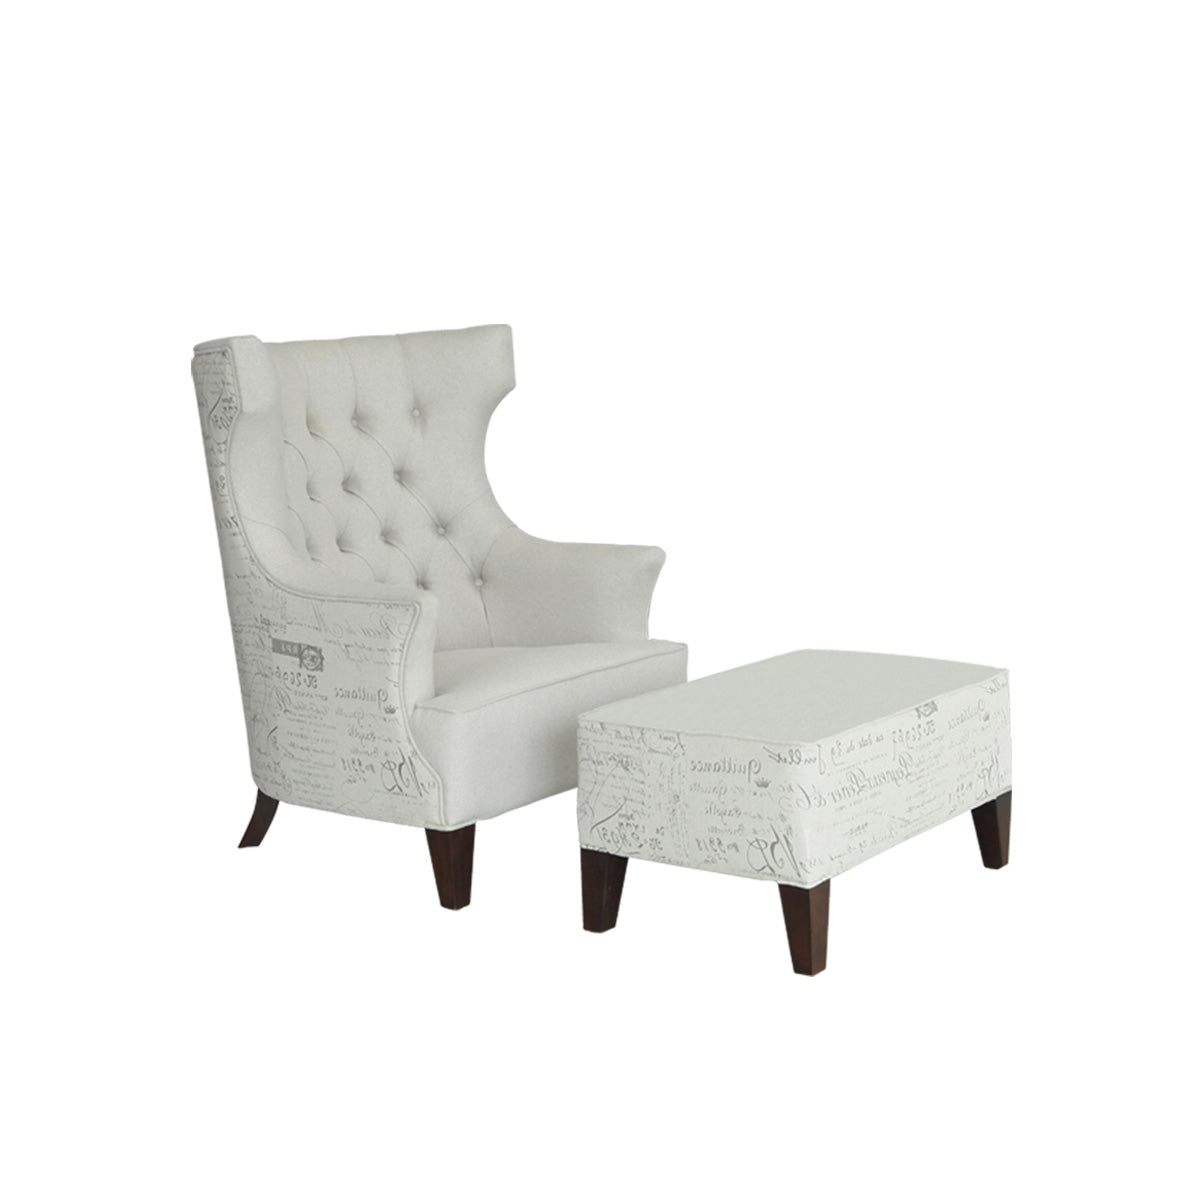 Verona Wing Chair + Ottoman  sc 1 st  Vinoti Living & Verona Wing Chair + Ottoman u2013 Vinoti Living